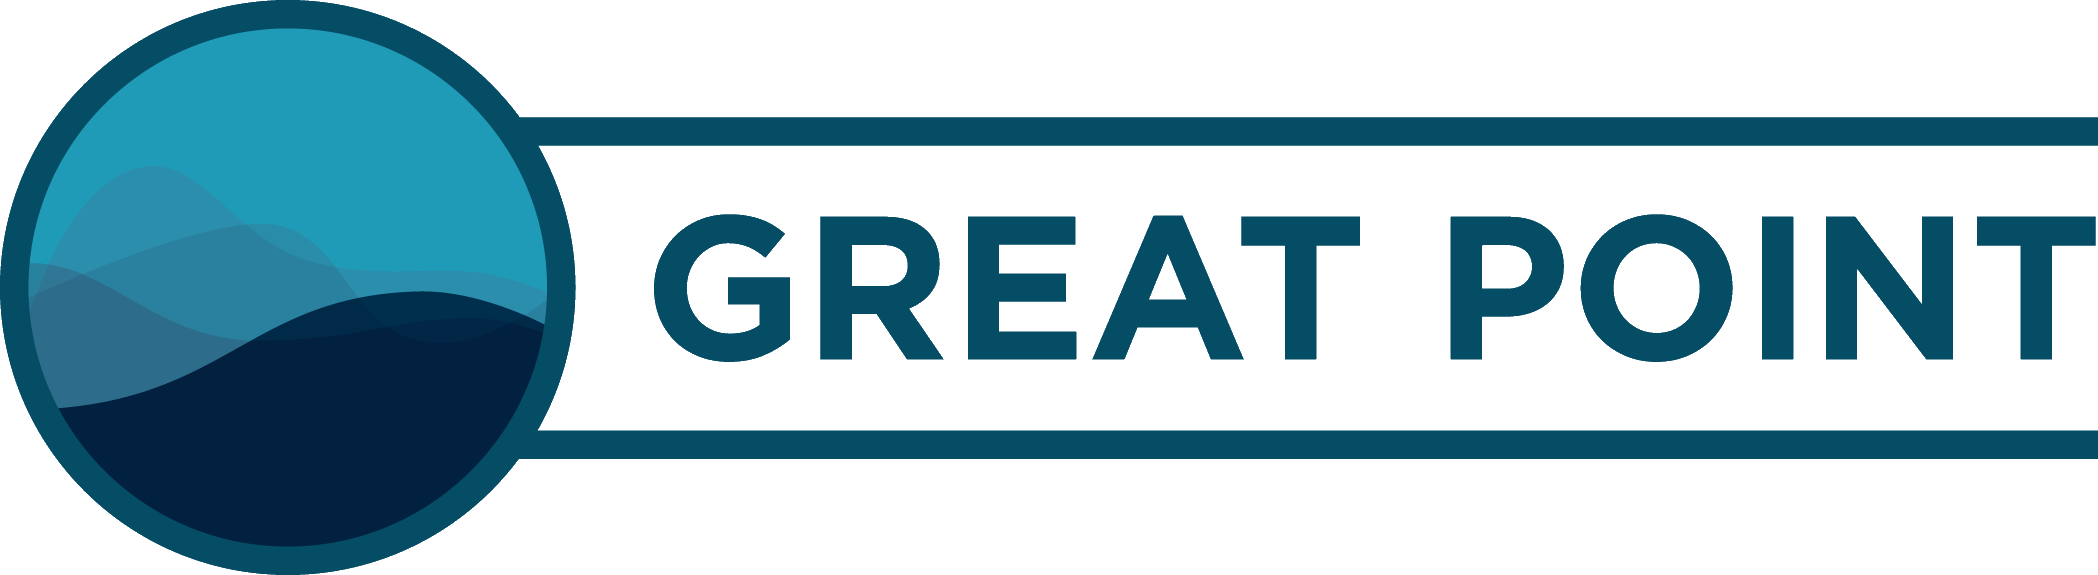 Great Point Investments Limited